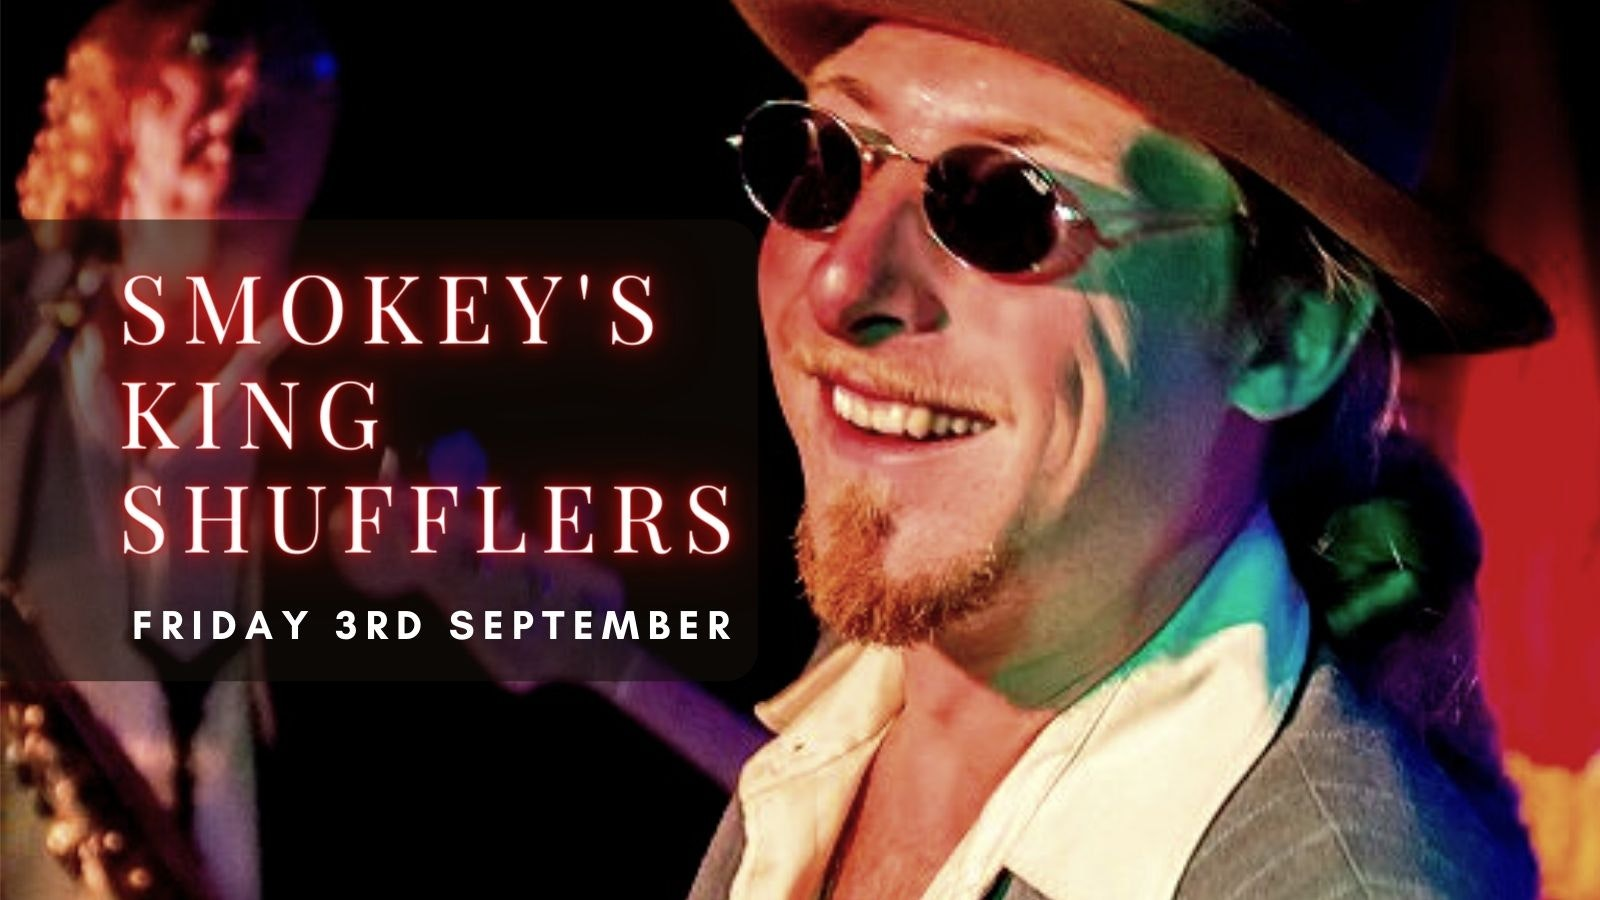 SMOKEY'S KING SHUFFLERS   Plymouth, Annabel's Cabaret & Discotheque